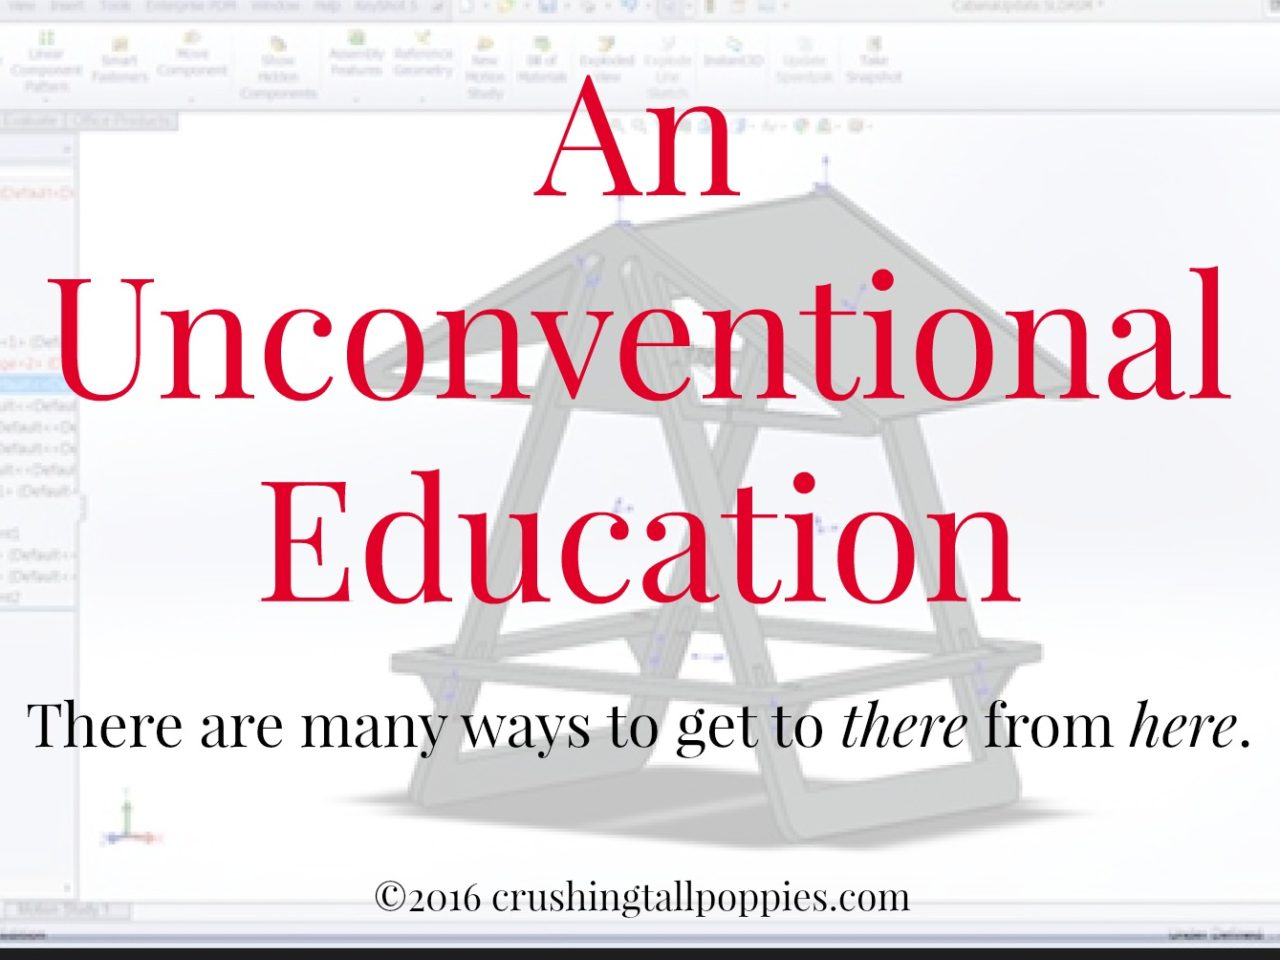 Unconventional education